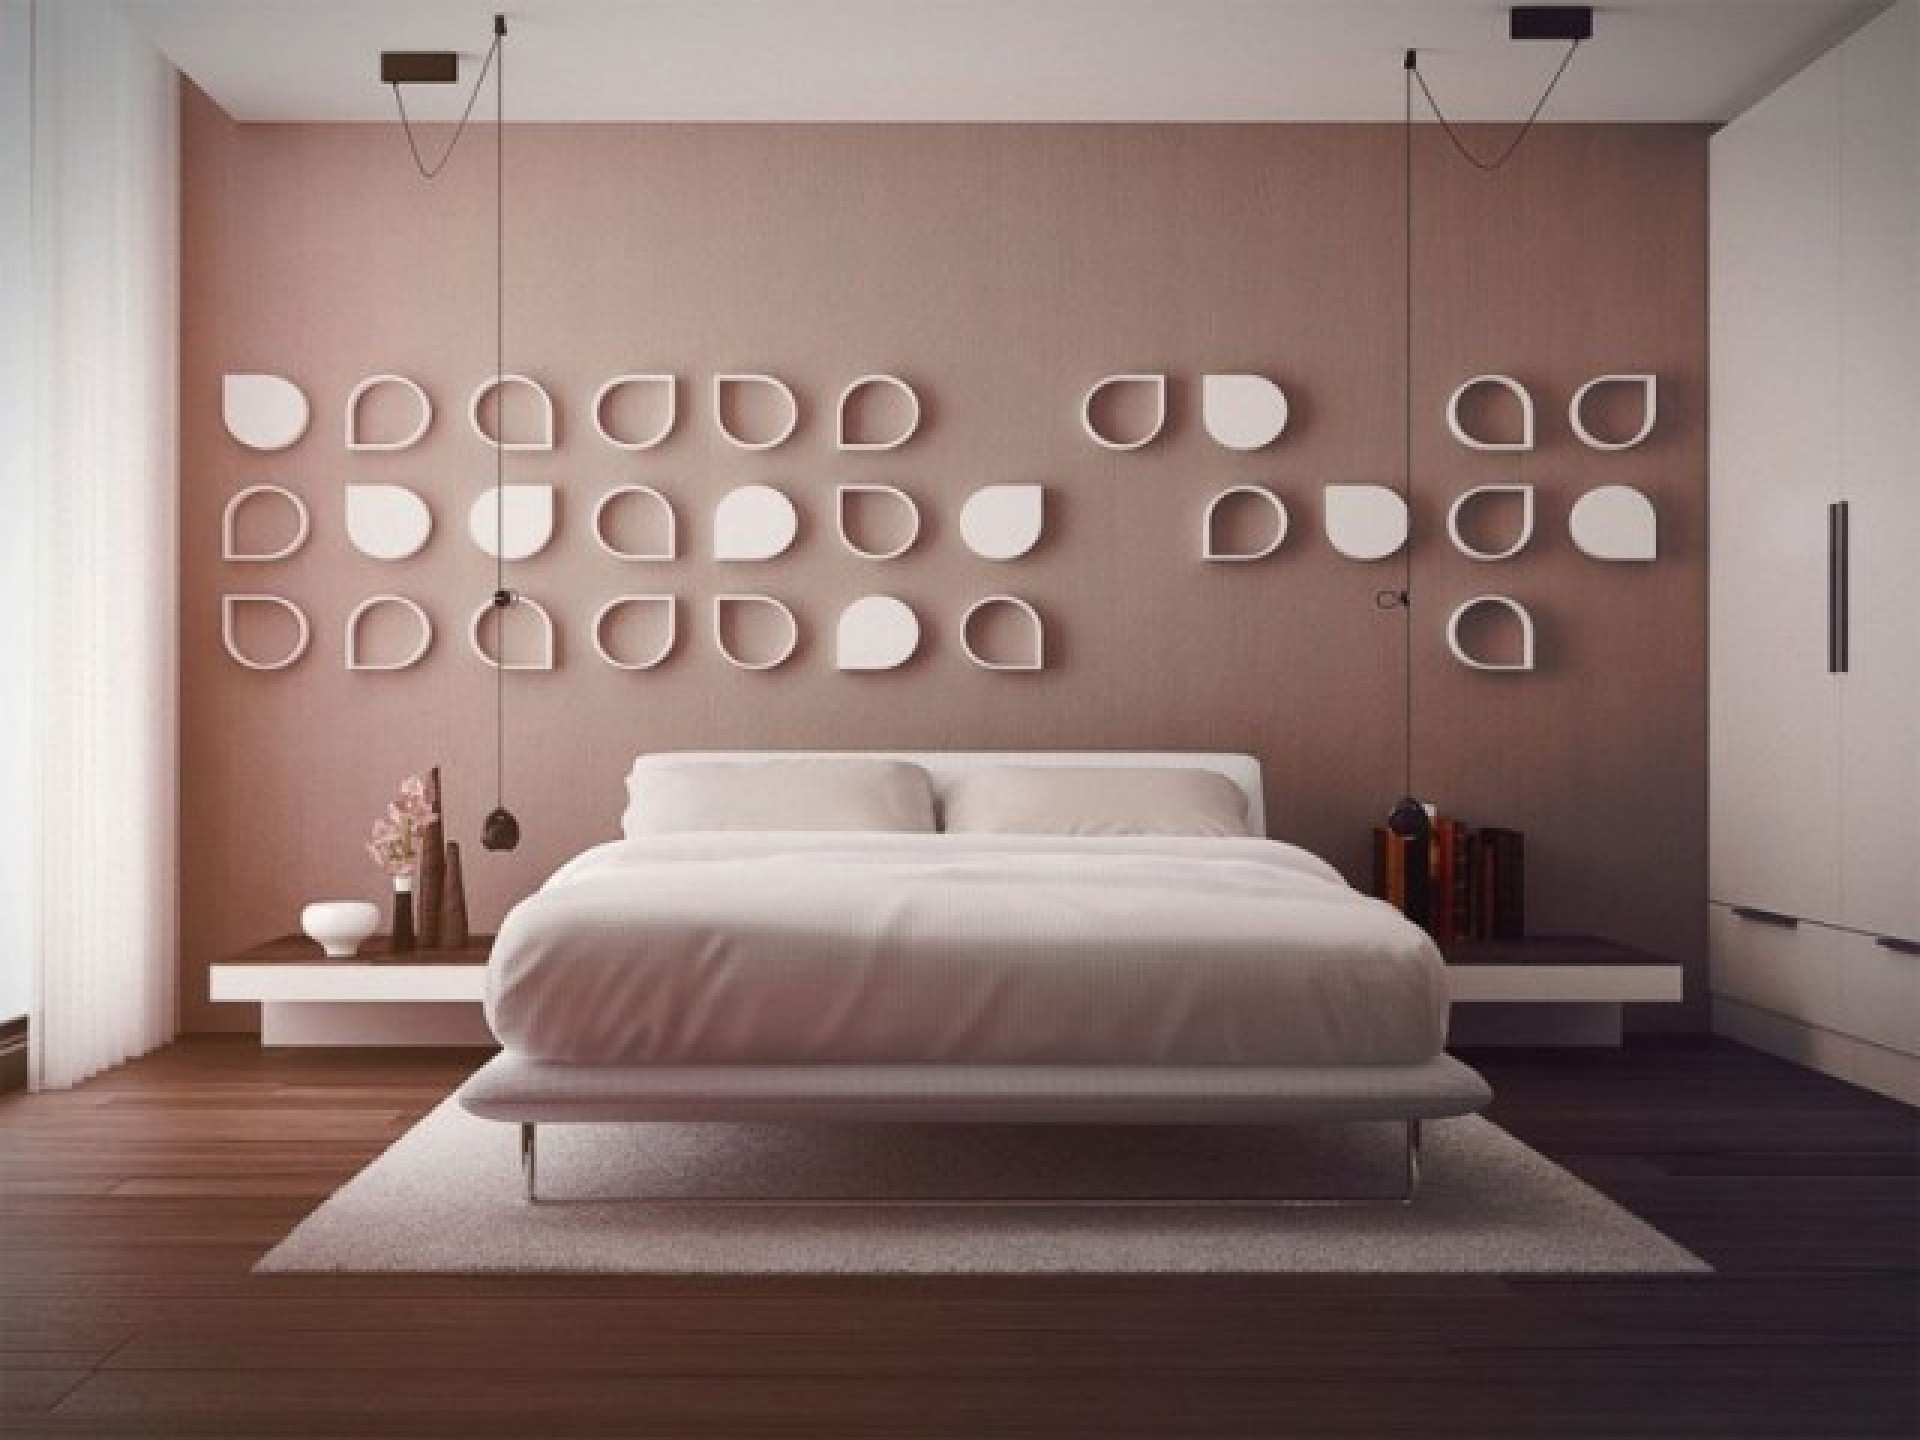 Download Bedroom Wall Decor